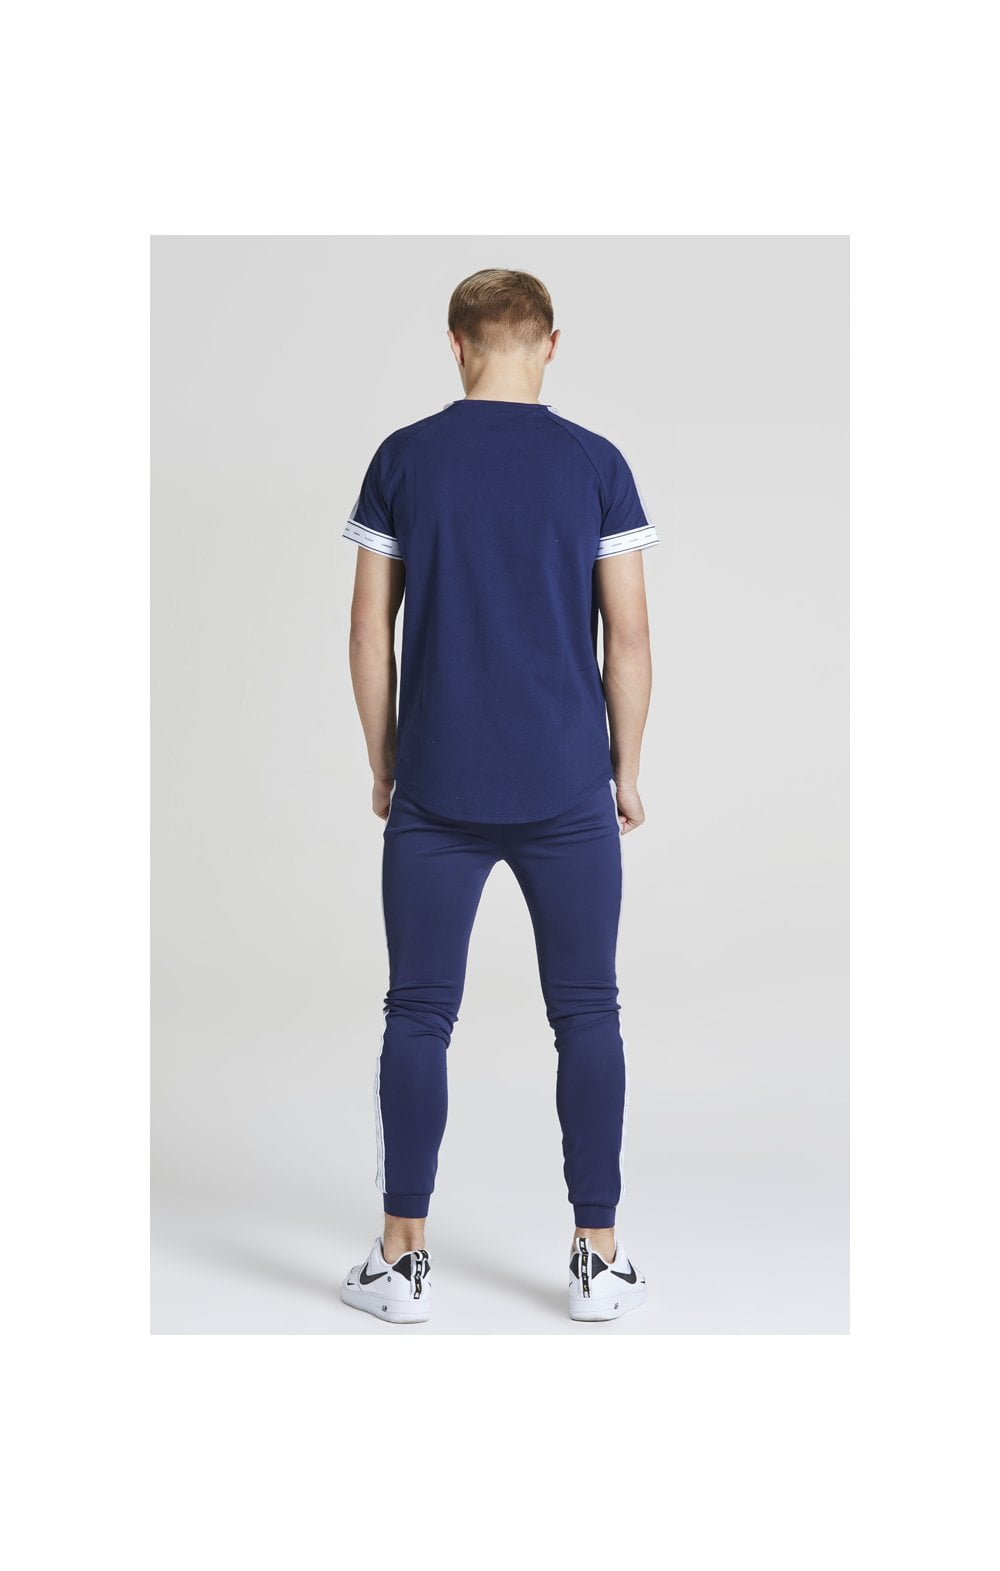 Illusive London Panel Tech Tee - Navy & Grey (4)